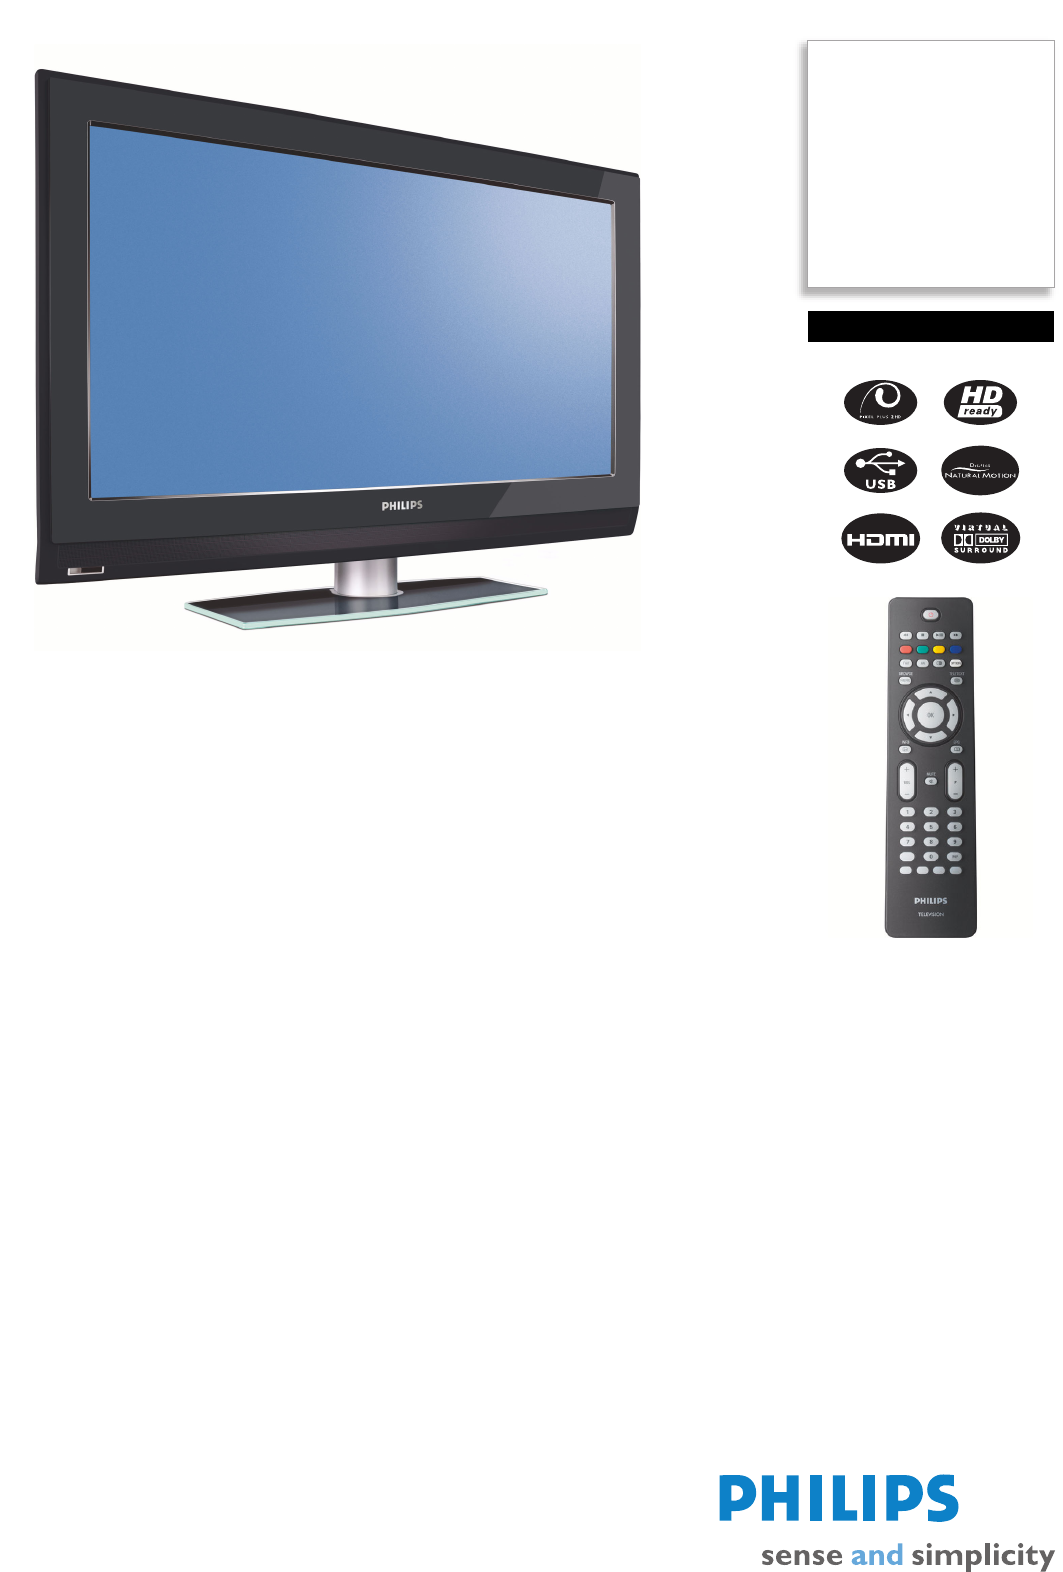 samsung led tv series 5 user manual pdf